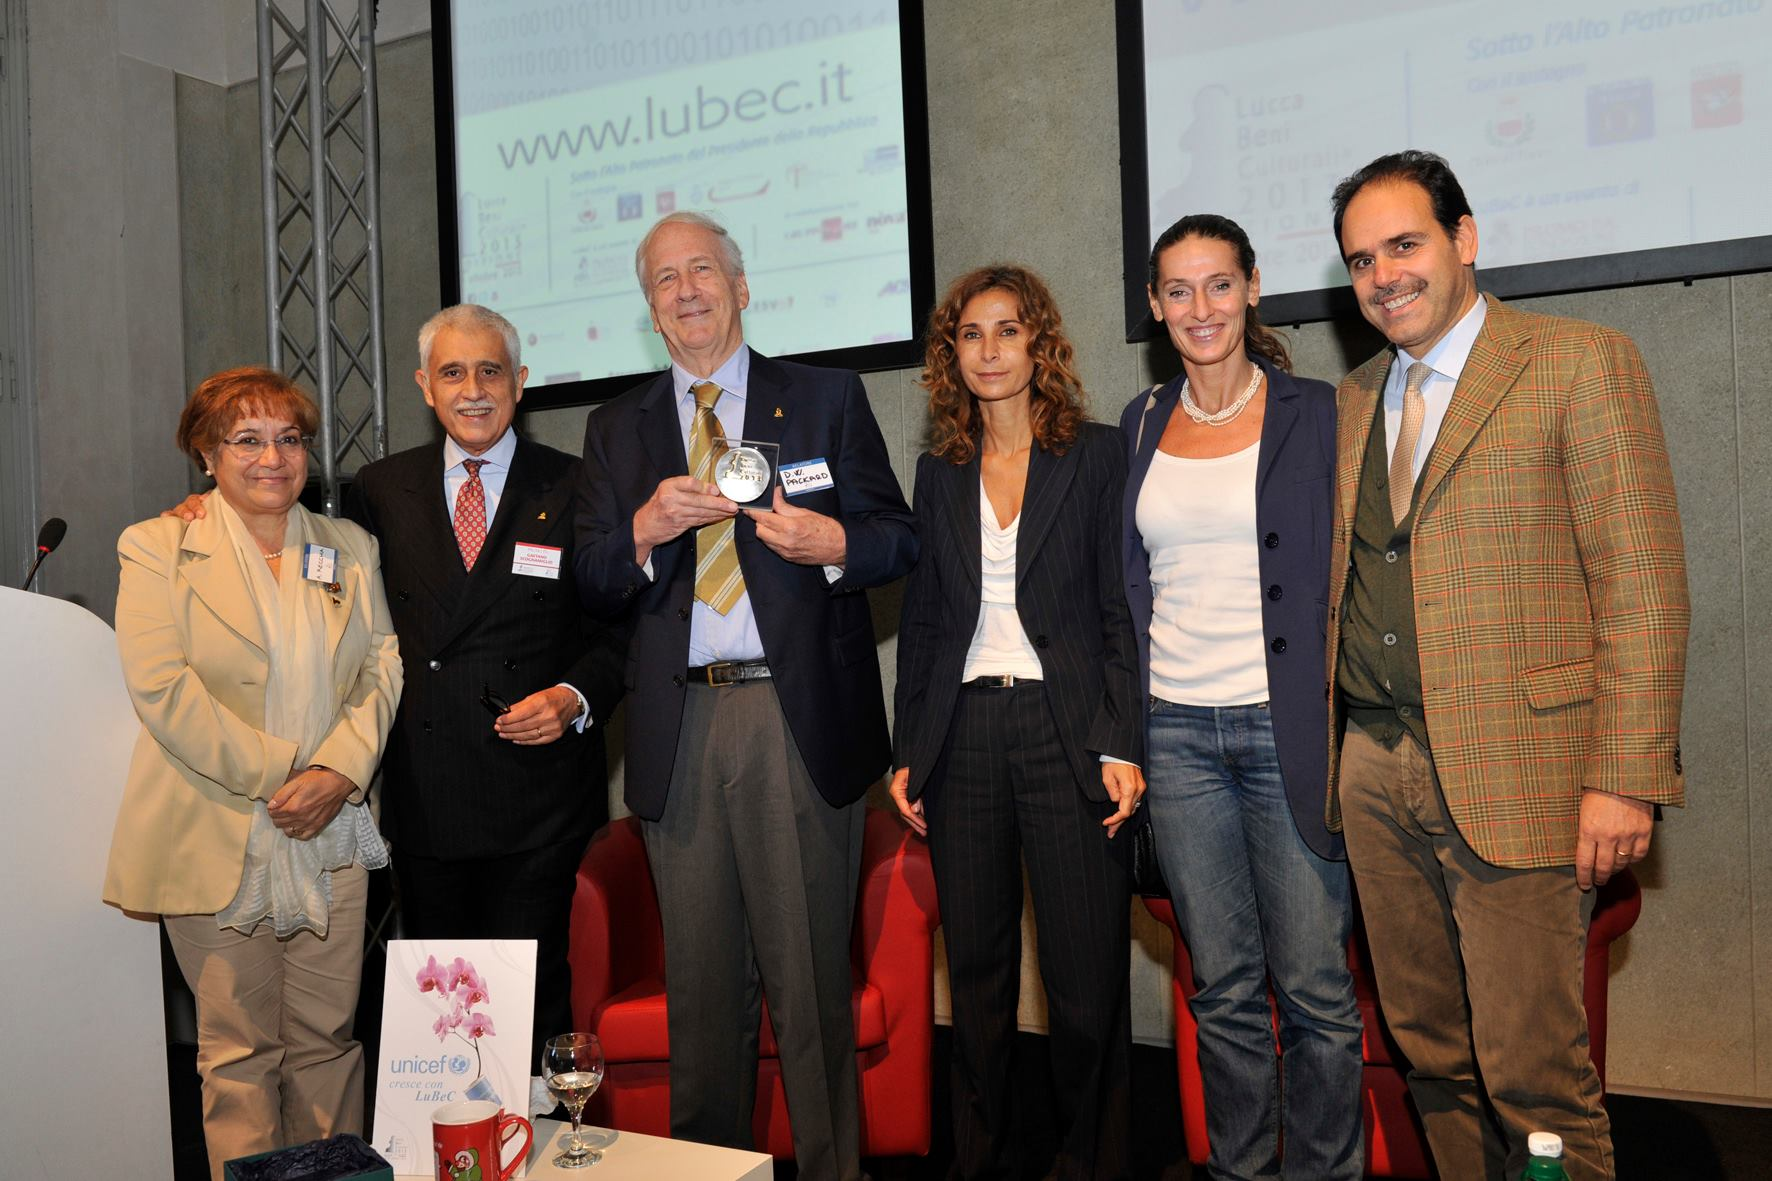 from left, Antonia Recchia, Secretary-general of the Ministry of National Heritage and Culture and Tourism; Gaetano Scognamiglio, President of  Promo PA Fondazione; David Packard; Francesca Velani, vice-president of Promo P.A. Fondazione;  Cristina Scaletti, Councillor in charge of Culture and Tourism for Tuscany; Andrea Marcucci, President of the Senate Committee for Culture